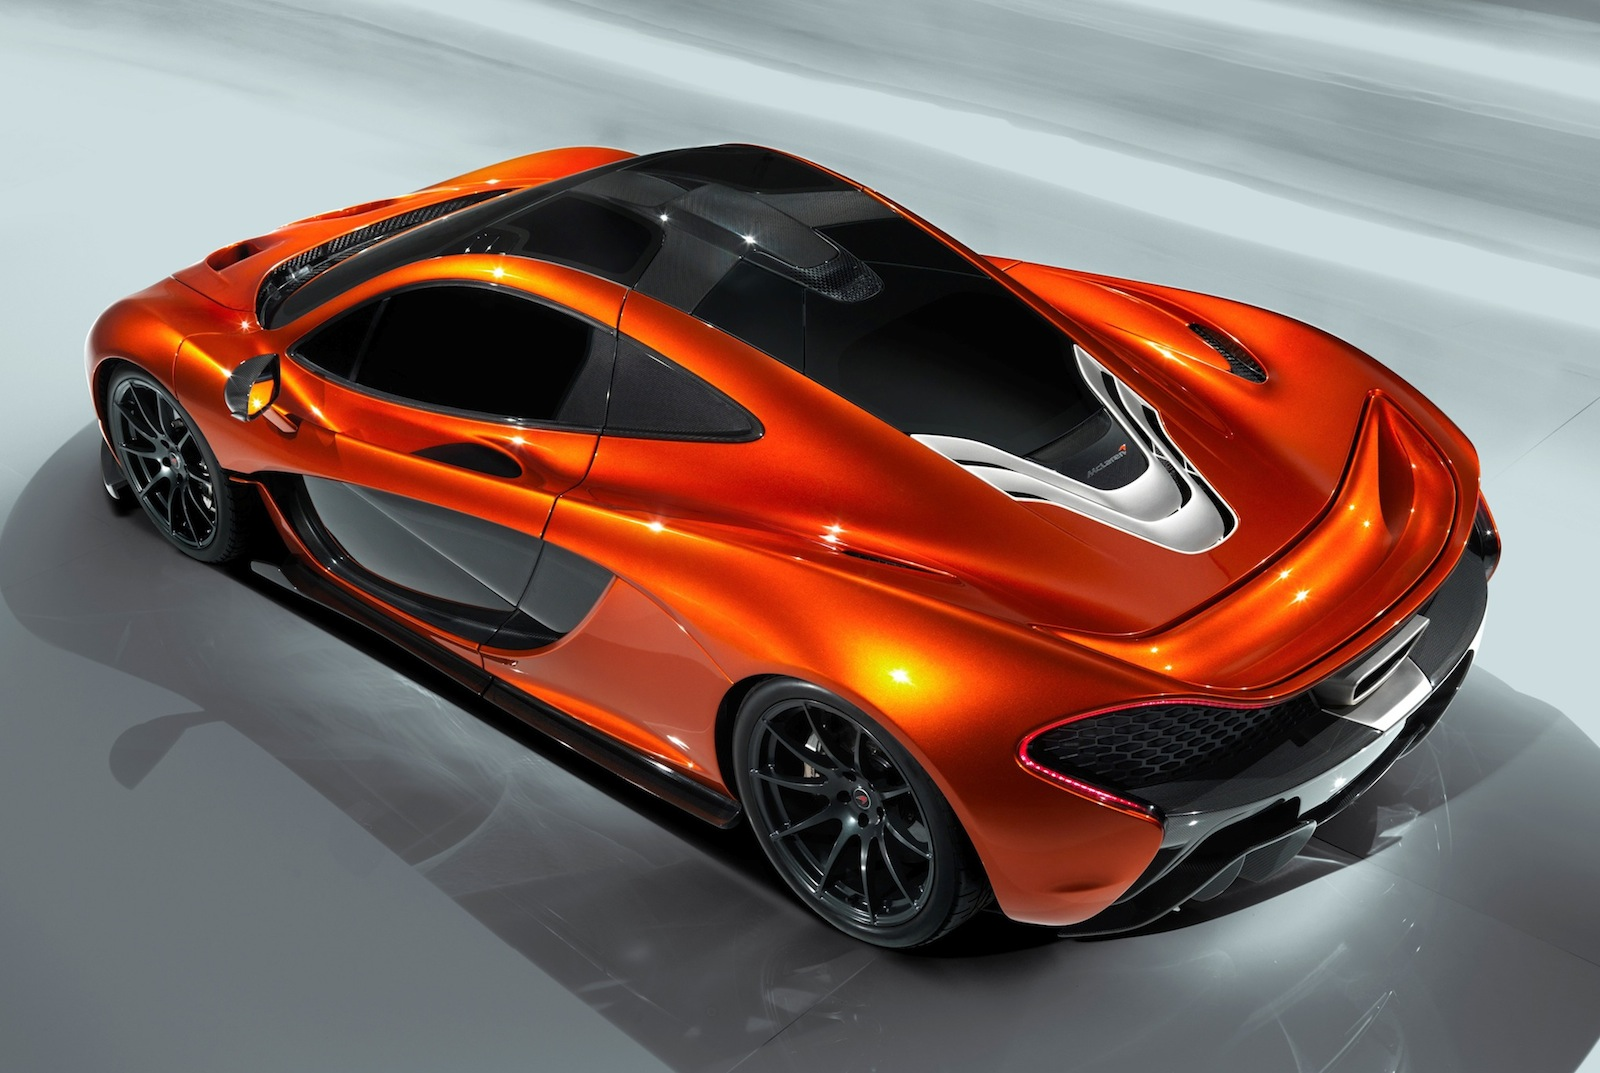 mclaren newport beach new official images mclaren p1 design study. Black Bedroom Furniture Sets. Home Design Ideas